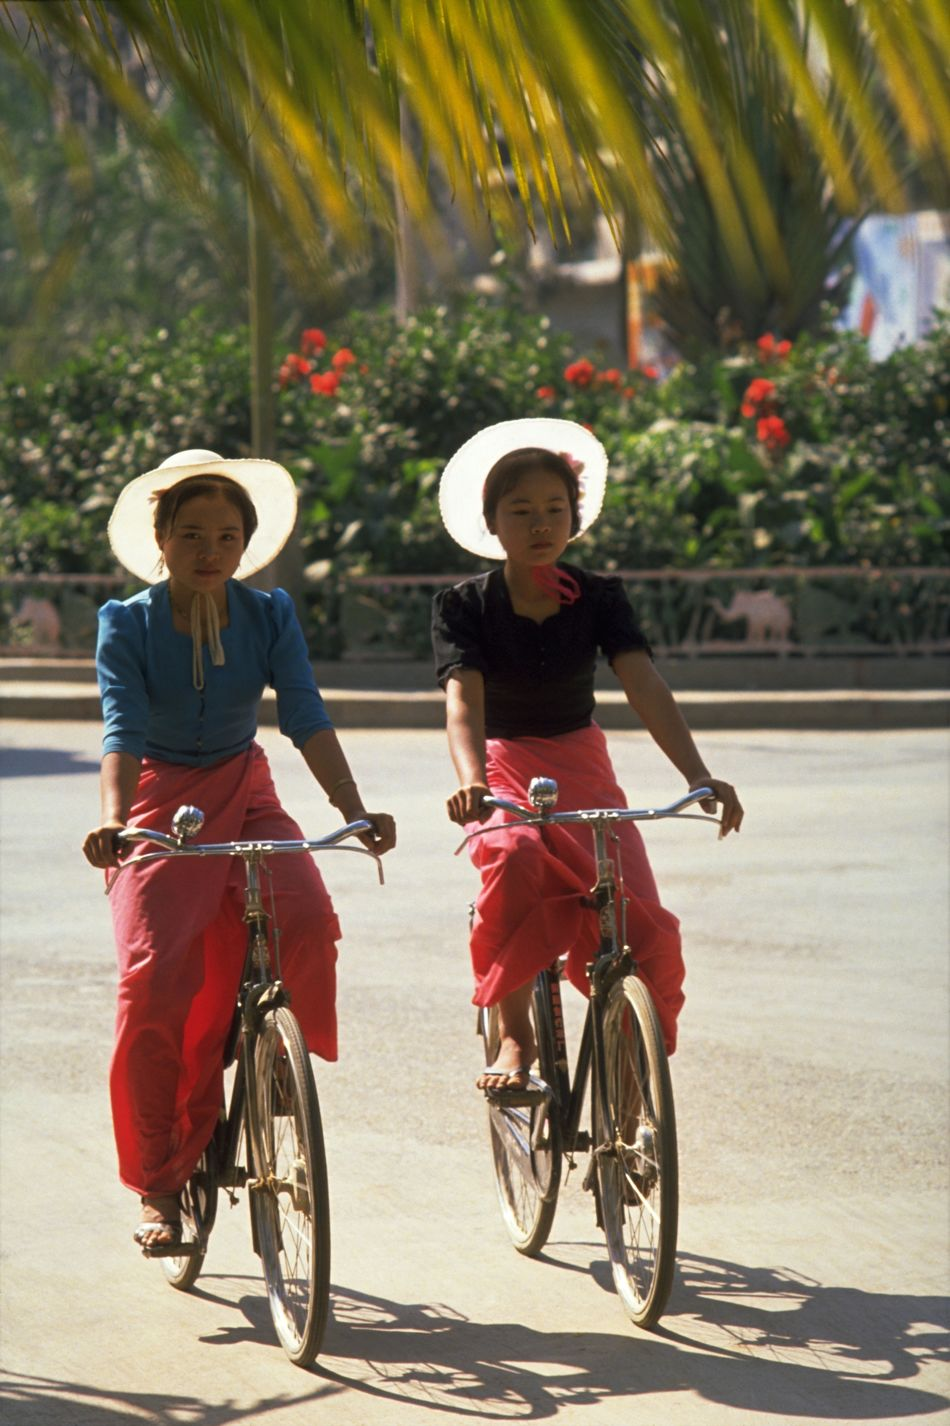 Dai Girl Cyclists in Xishuangbanna. White projects purity, cleanliness, and neutrality. 'Six hours after we left Simao, the muddy Lancangjiang river appeared like a shadow at a lighted window. Another couple of bends and the curtains were flung wide open: Jinghong, the bare lady, lay there on her bed of green'. That's pretty much how I introduce the reader to Xishuangbanna, in Nomadic Gatherings. This area in the deep south of Yunan province, bordering Burma and Laos, is inhabited by a dozen of the minority tribes; namely the Dai, Han, Hanni, Bulang, Lagu, Wa, Yao, Jinuo, Zhuang, Yi, Hui, and Miao. Affected by the monsoon from the Indian Ocean, the region has a climate of high temperature and high rainfall and is mild throughout the year. There are no season distinctions; only wet and dry. The rich forest is said to be roamed by herds of wild elephants, buffaloes, rhinoceroses, tigers, and gibbons. I only had time for a stroll to Chuan Huan Park and the surrounding Dai minority villages. Chickens and pigs roamed freely around the bamboo fenced territories of the raised wooden cottages. The Dai are a colourful and friendly people and the region is celebrated for its annual water-splashing festival in April. I had a tourist meal of shredded pork, fried bananas, and sauteed rice at one of the minority guest house restaurants all for 7 Yuan (60p); and that included the Pi Jiu (beer). http://pics.travelnotes.org/ Authentic Bicycle Calm China Cycling CyclingUnites Cyclists Dai Minorities Enjoy The New Normal Fresh Hats Jinghong Local Michel Guntern People Real People Serene Togetherness Travel Travel Photography Travel Photos Travel Pics Tropical Snap a Stranger White